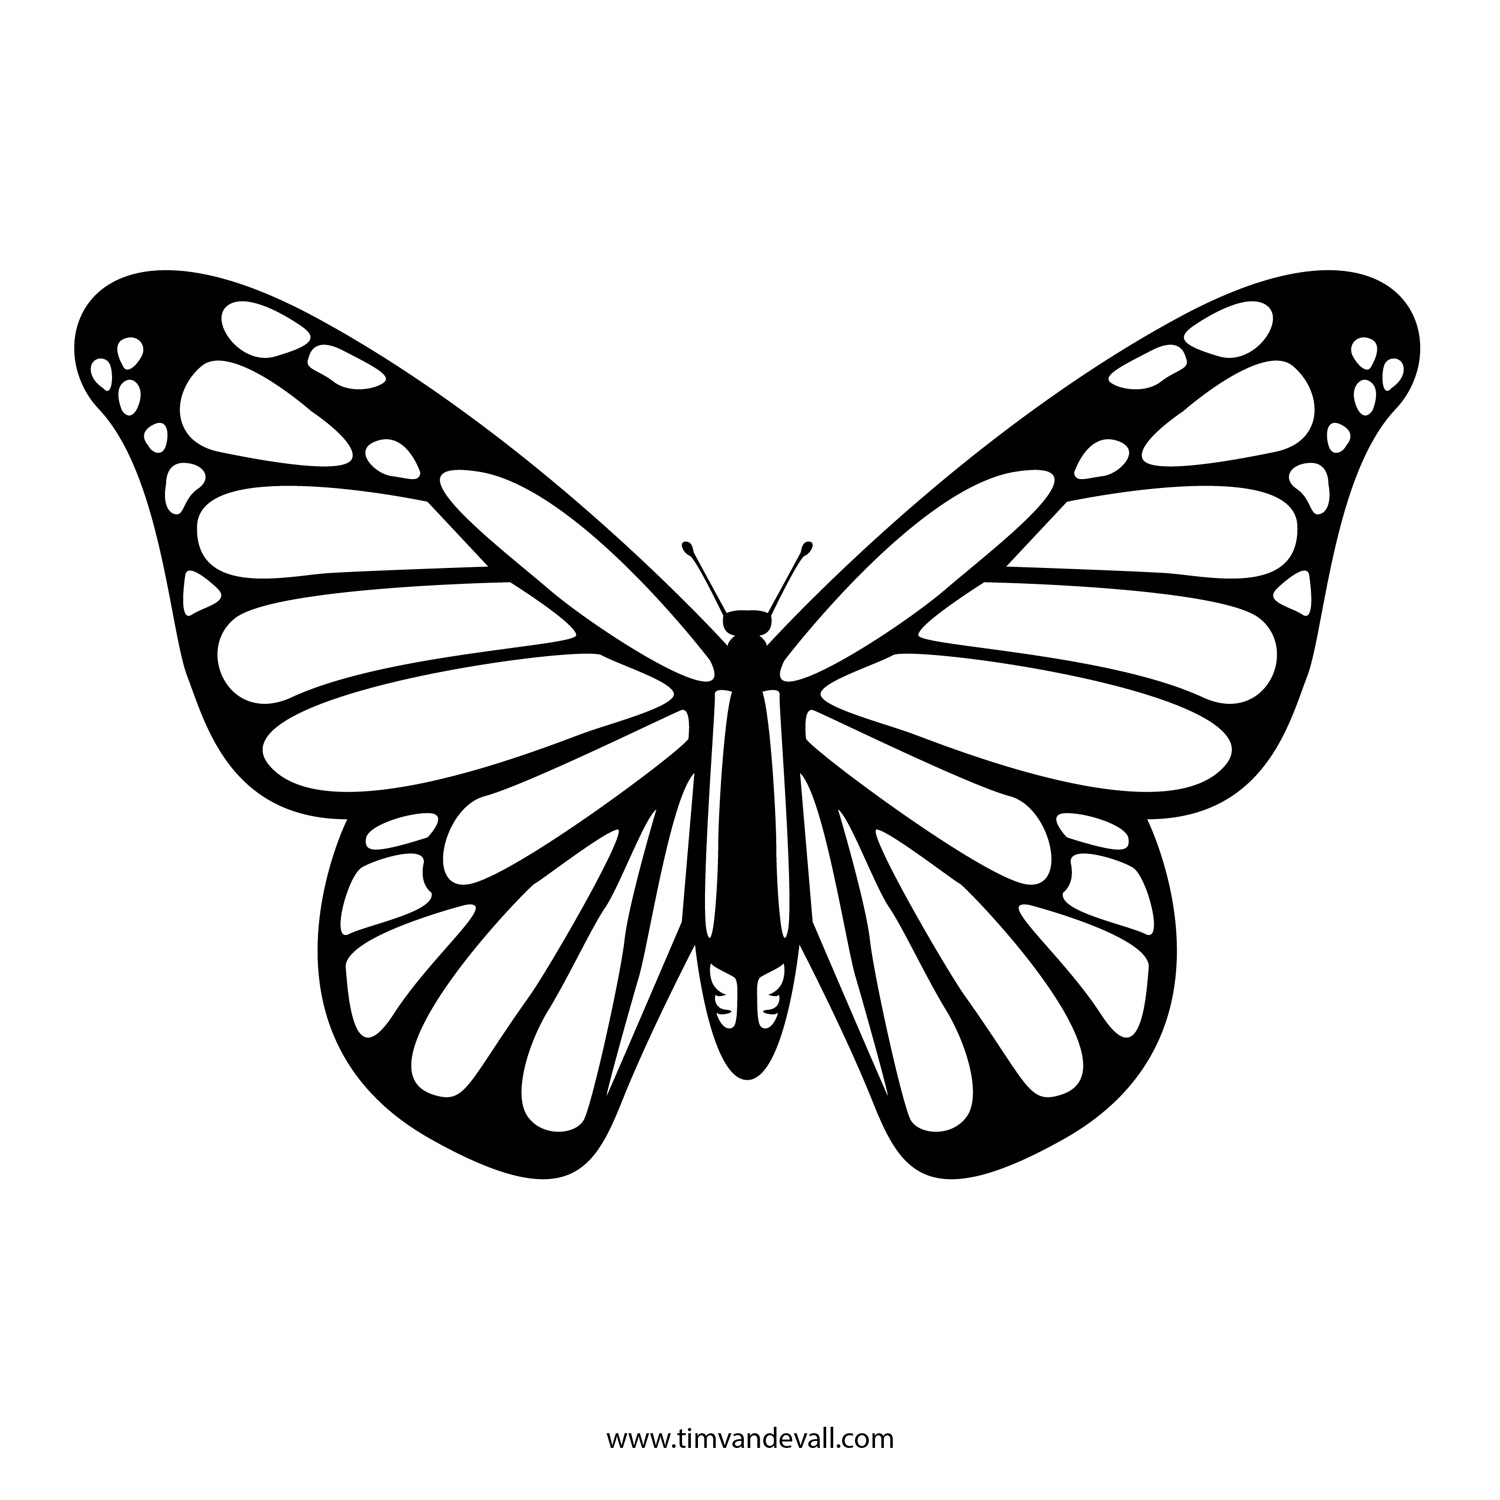 9 Images of Free Printable Stencil Butterflies